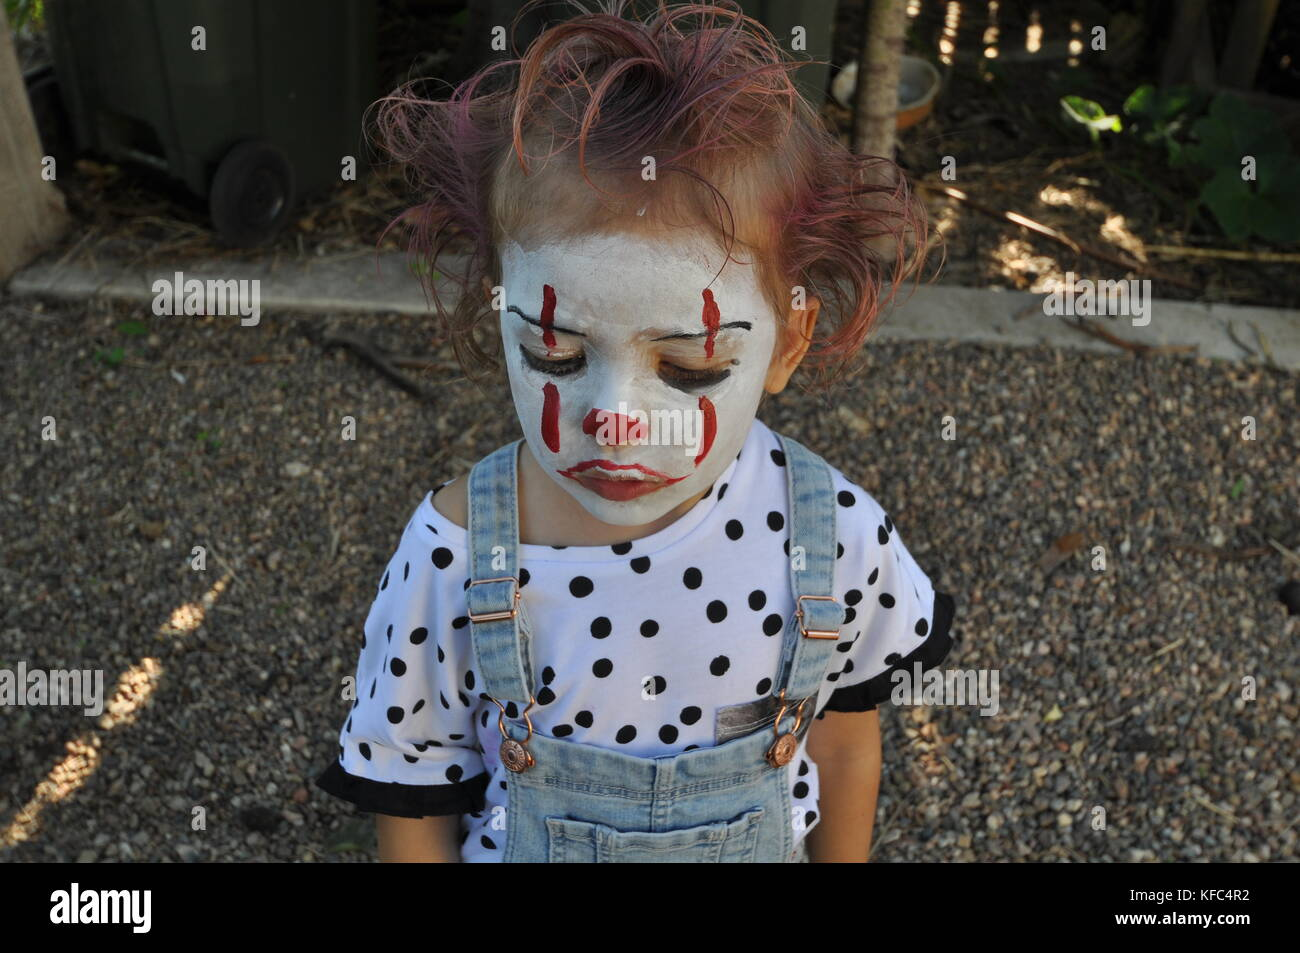 Pennywise Clown Immagini   Pennywise Clown Fotos Stock - Alamy a115b88d292